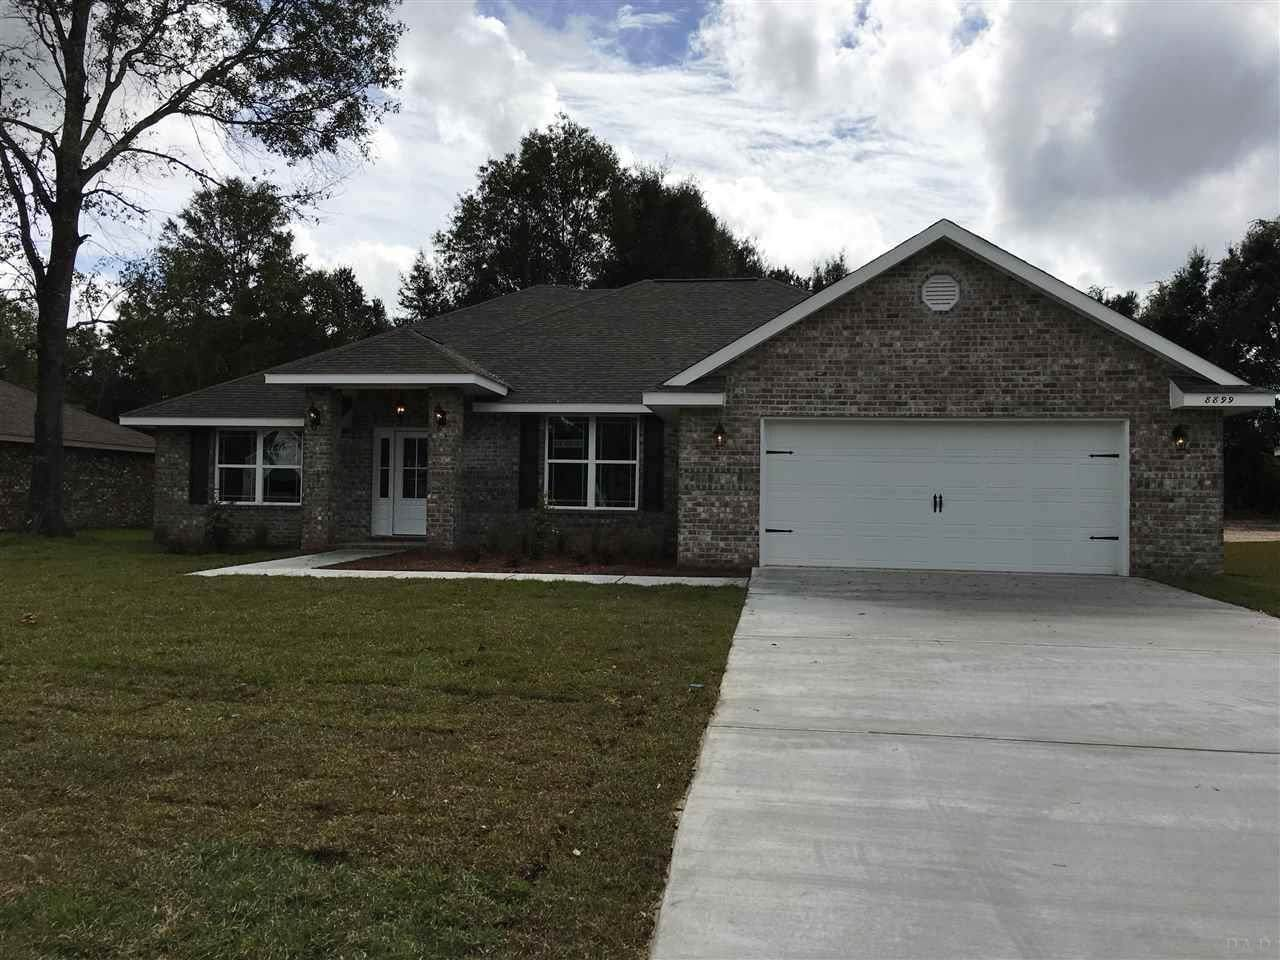 5191 Gaineswood Dr - Photo 1